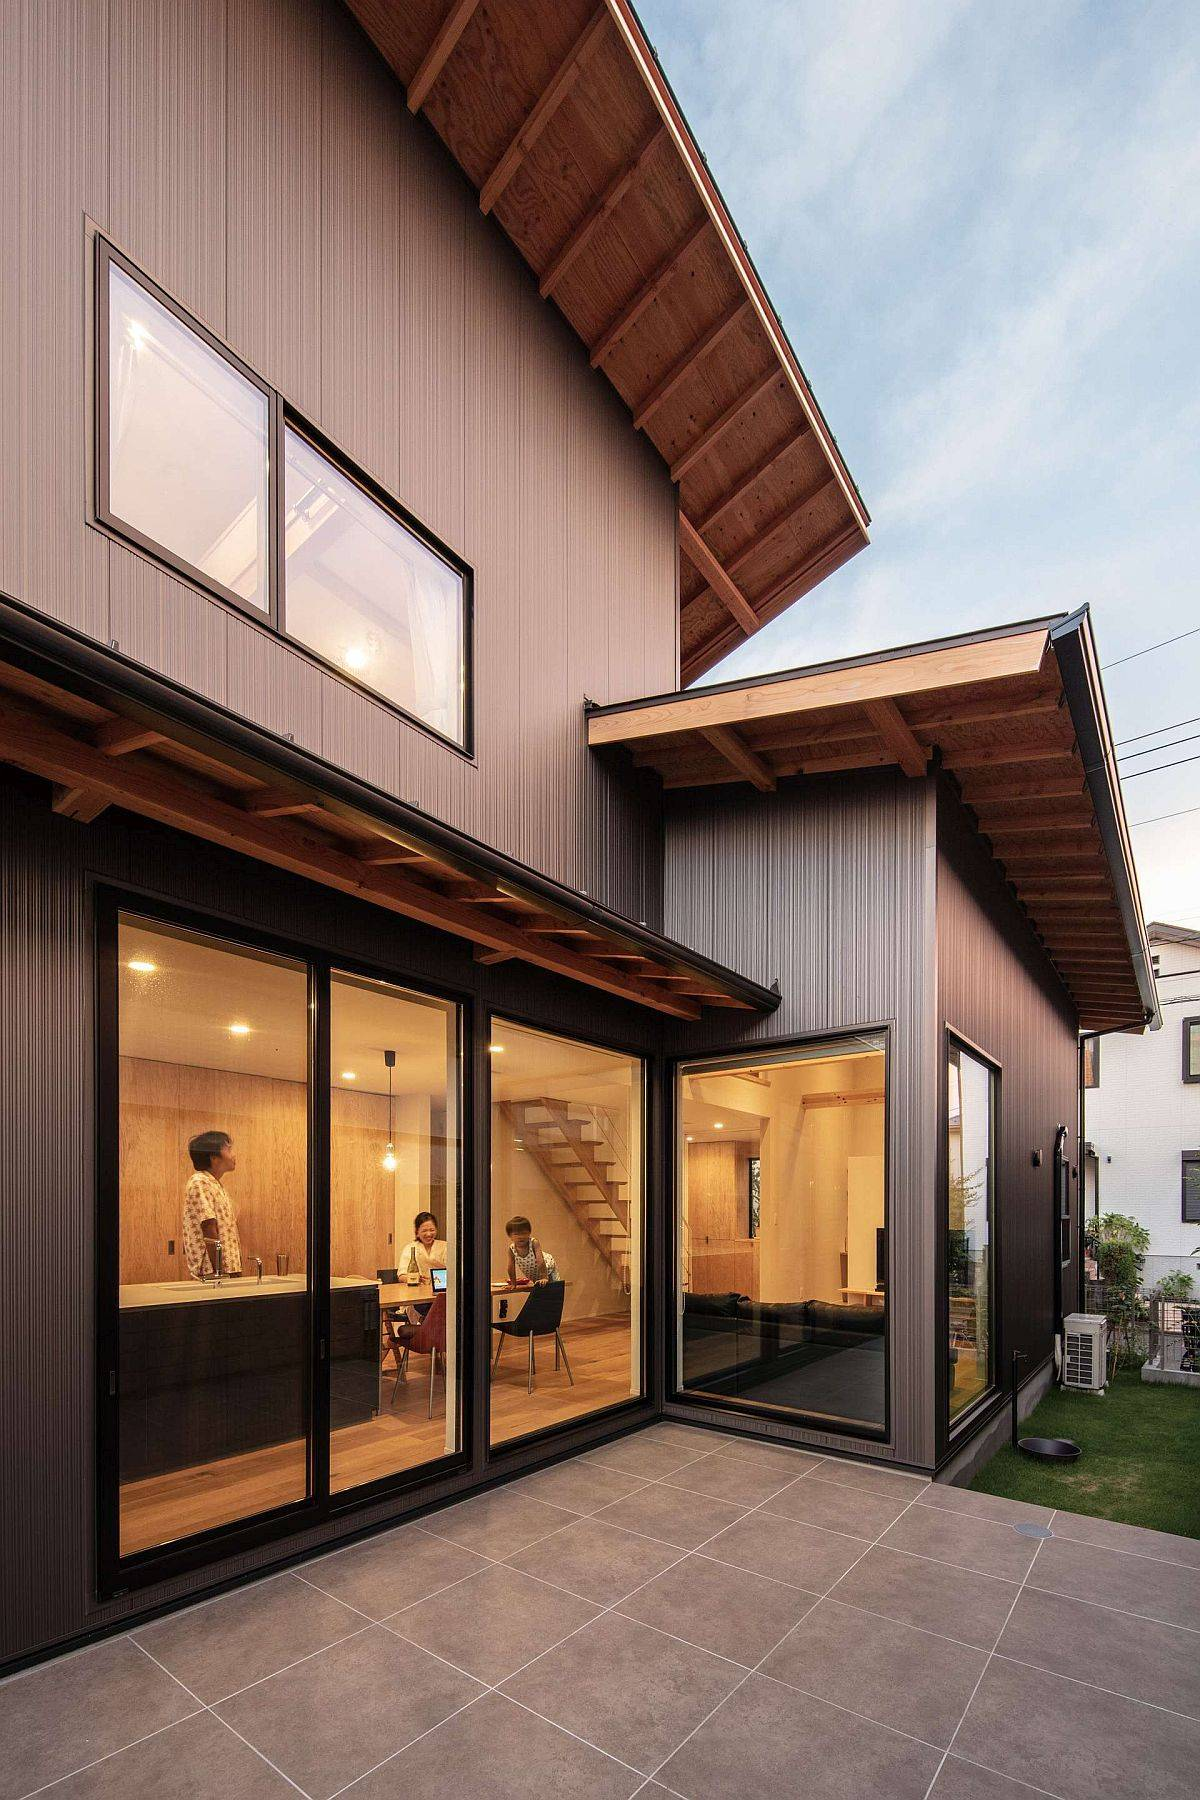 Sliding-glass-doors-of-the-house-connec-the-kitchen-and-living-area-with-the-exterior-20780